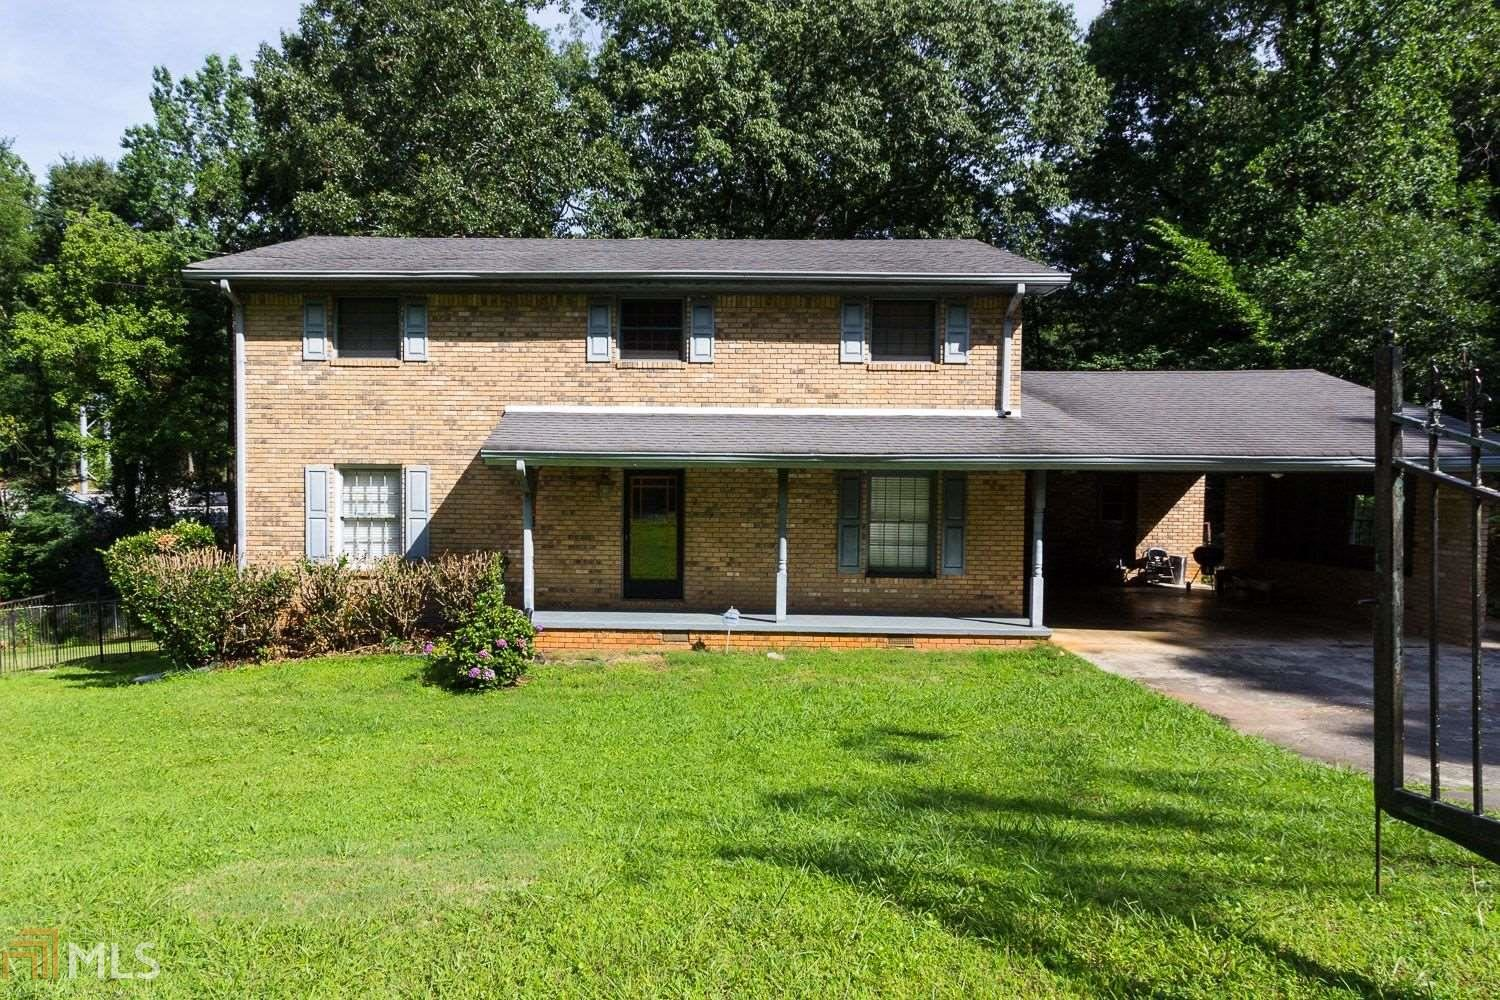 2307 Troy Cove Rd, Decatur, GA 30035 - #: 8814940